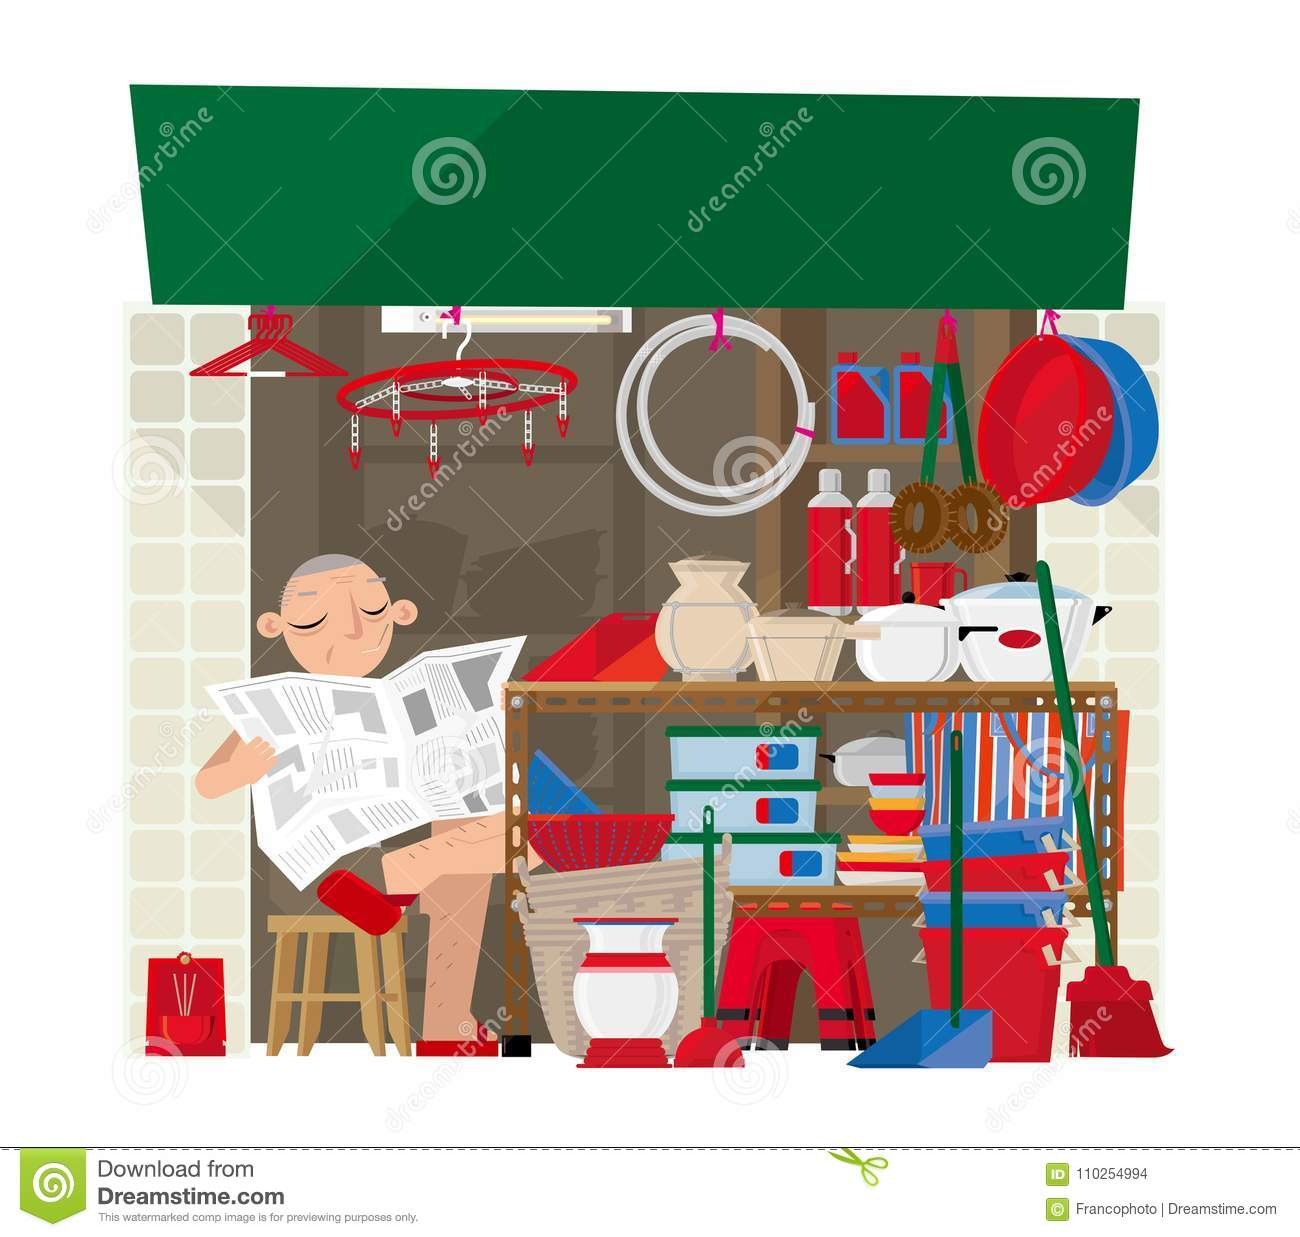 Household Goods Store: A Small Household Goods Store In Hong Kong Stock Vector